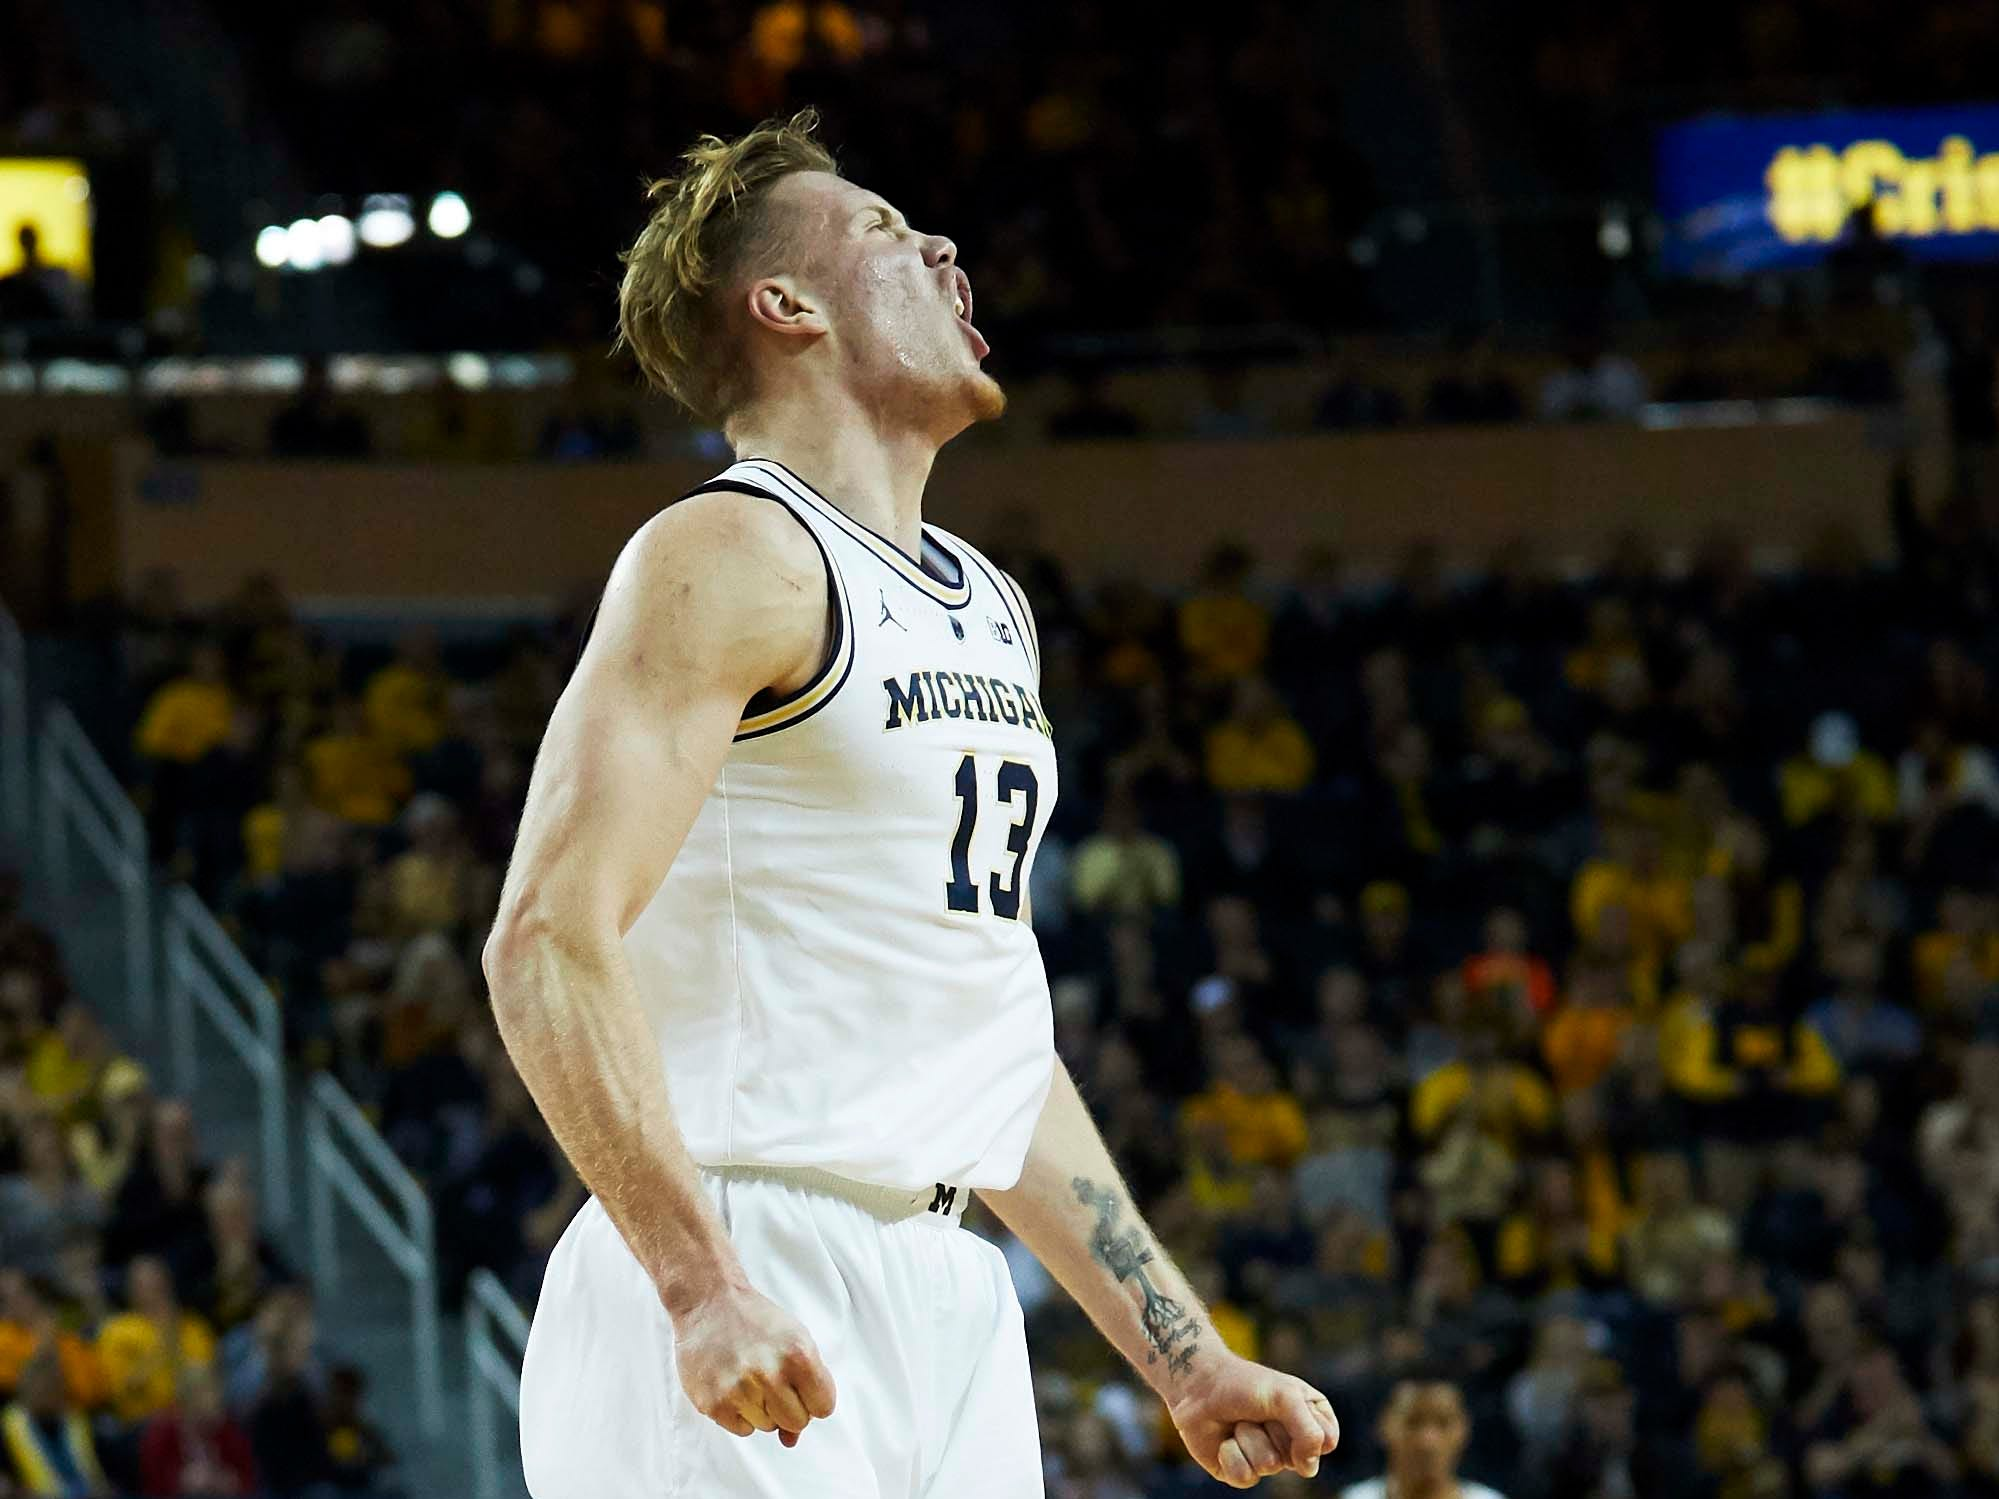 Dec 1, 2018; Ann Arbor, MI, USA; Michigan Wolverines forward Ignas Brazdeikis (13) celebrates after he dunks in the first half against the Purdue Boilermakers at Crisler Center. Mandatory Credit: Rick Osentoski-USA TODAY Sports